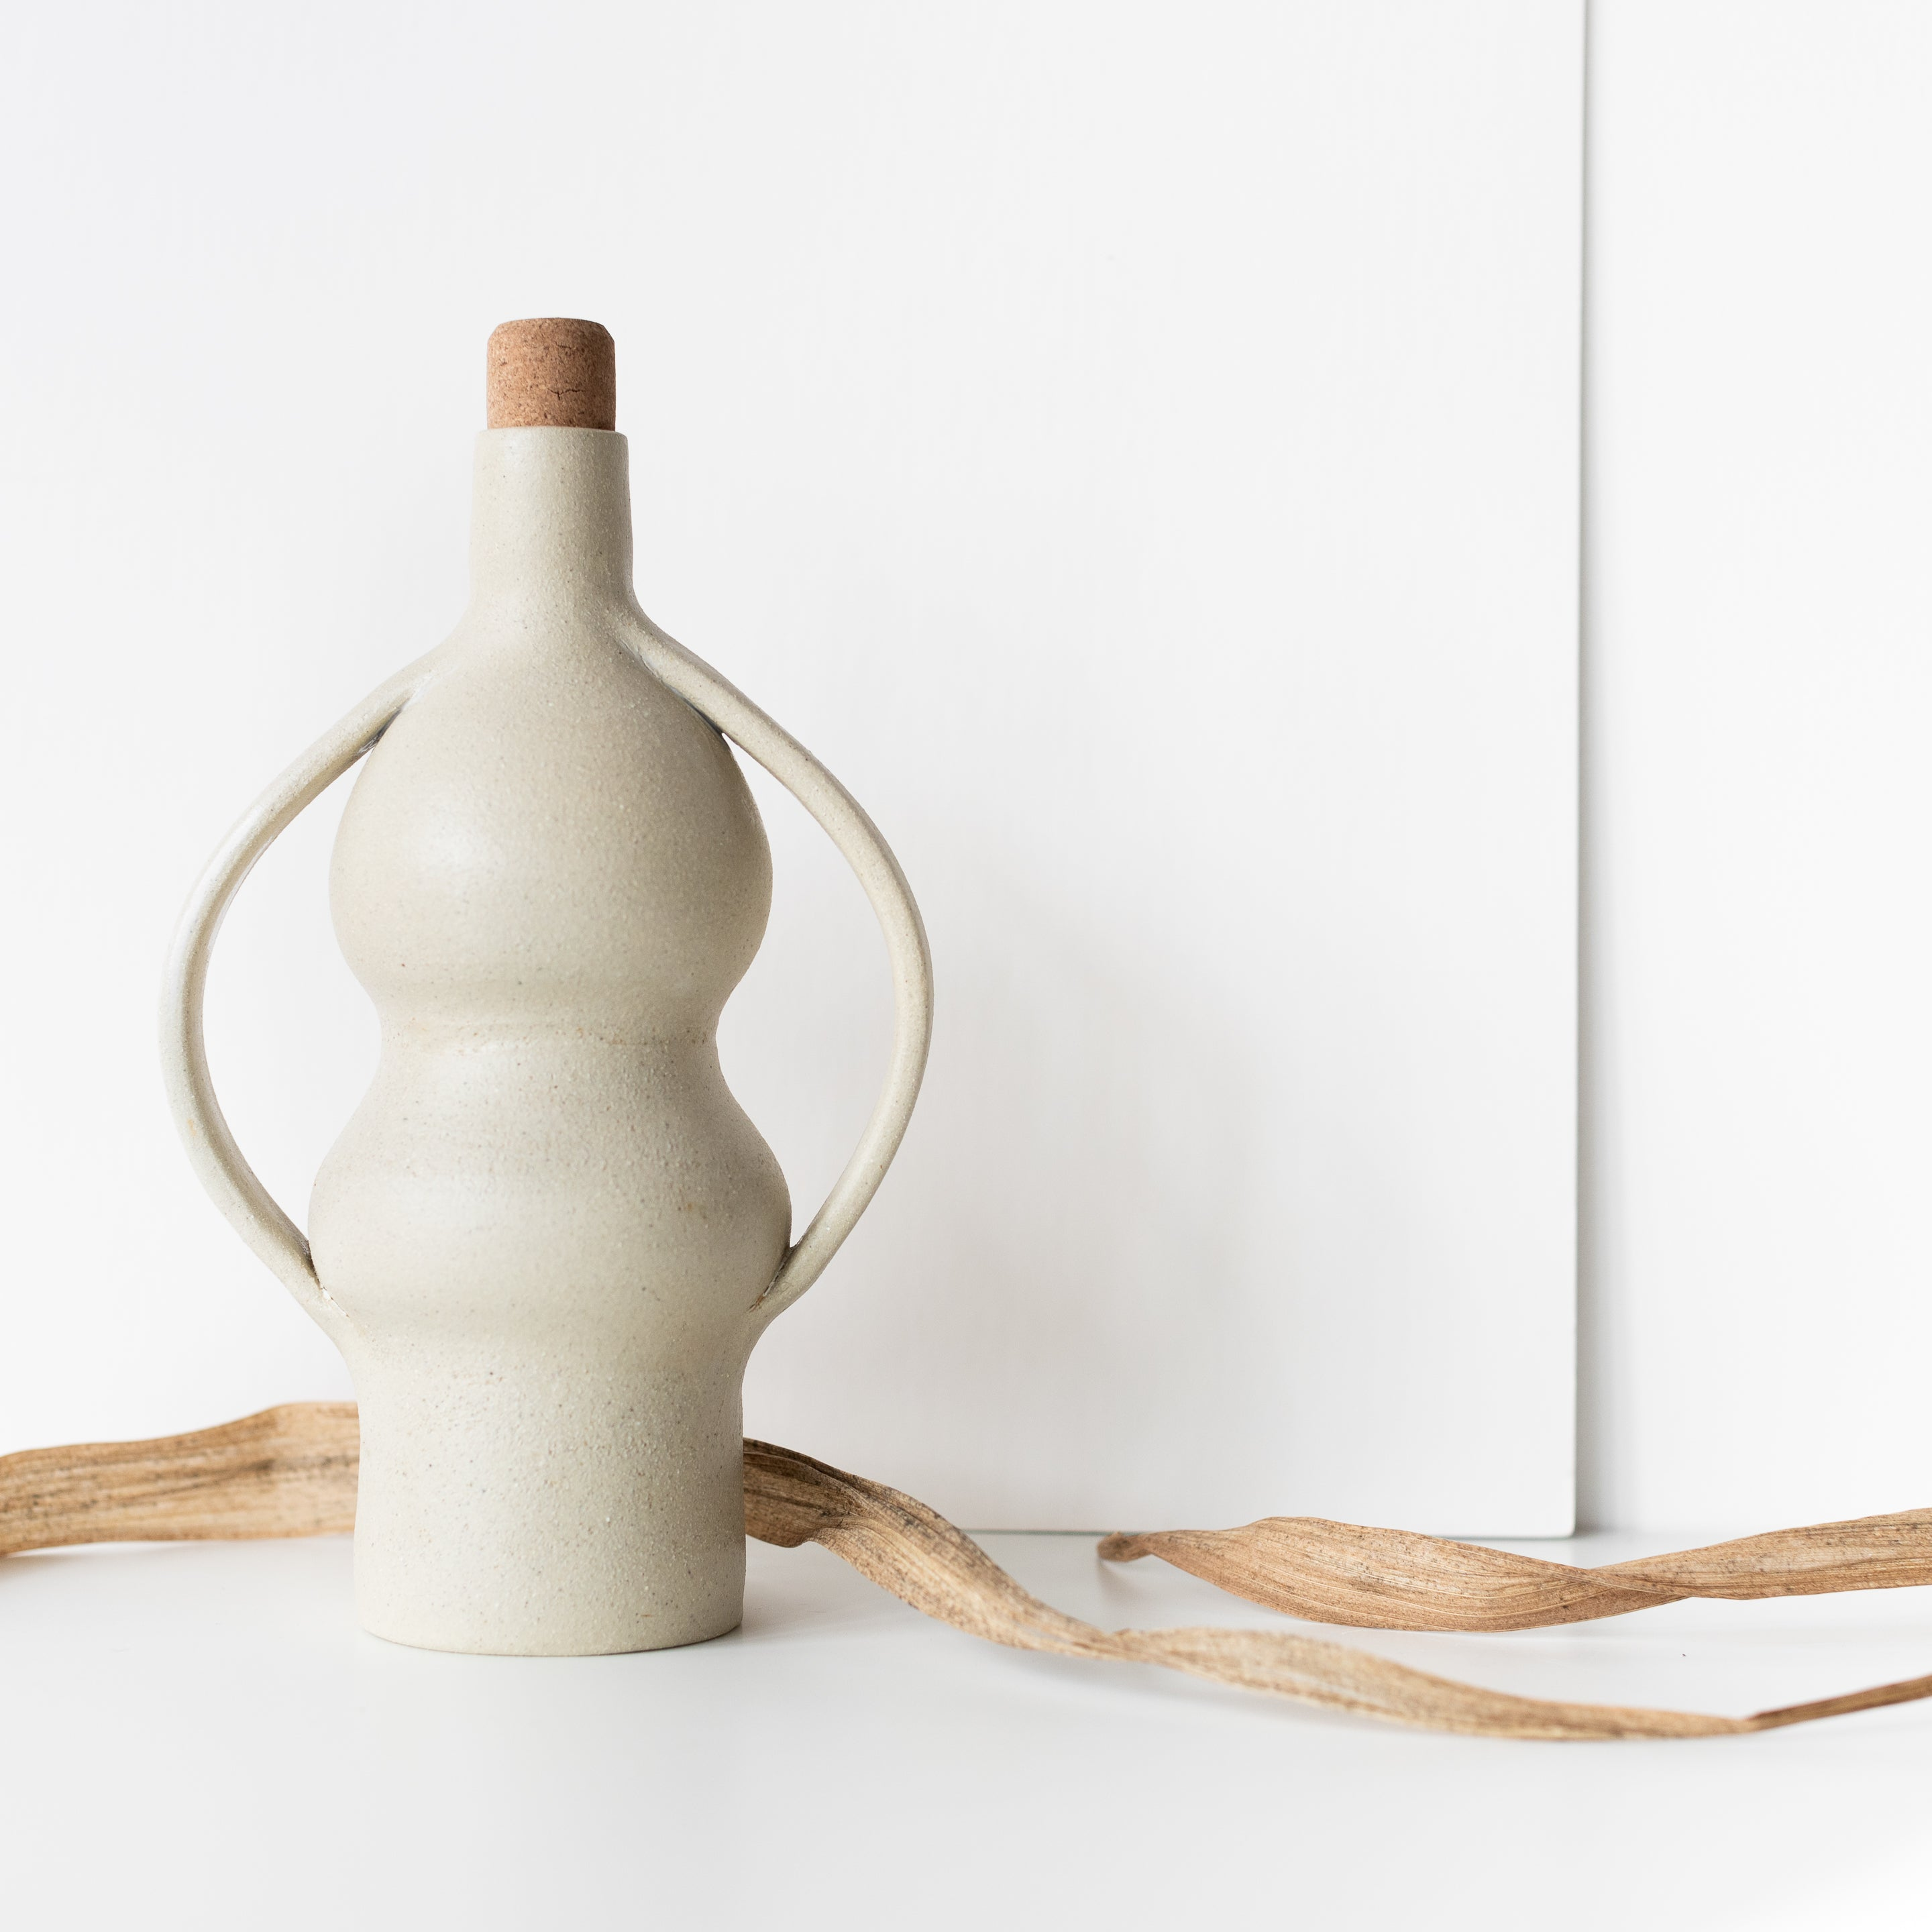 Kati Von Lehman Stoneware Ceramic Bottle